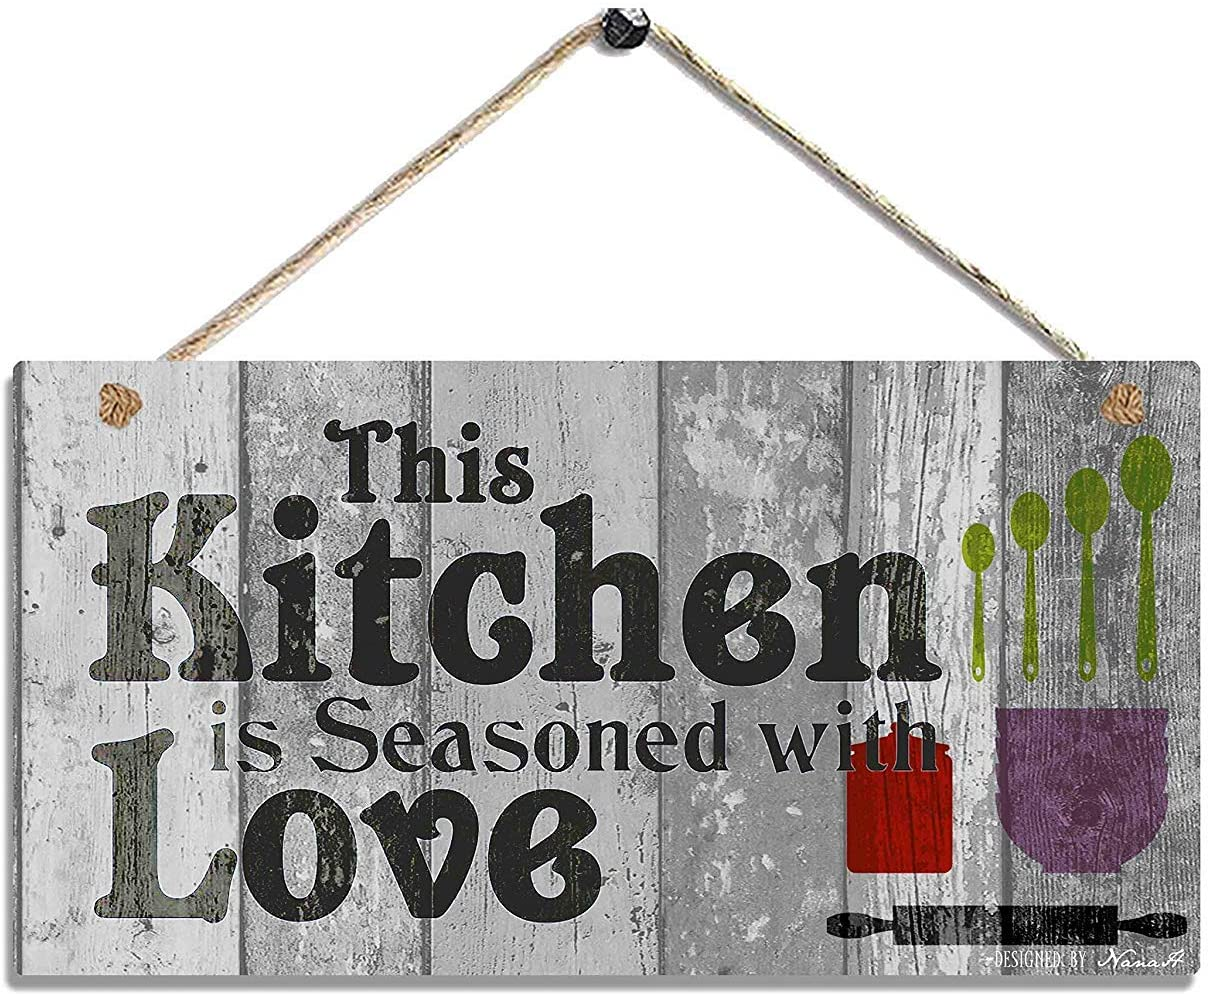 Hty This Kitchen is Seasoned with Love-Rustic Wood Wall Hanging Decor Sign Size 10x5(25x12.5 cm)